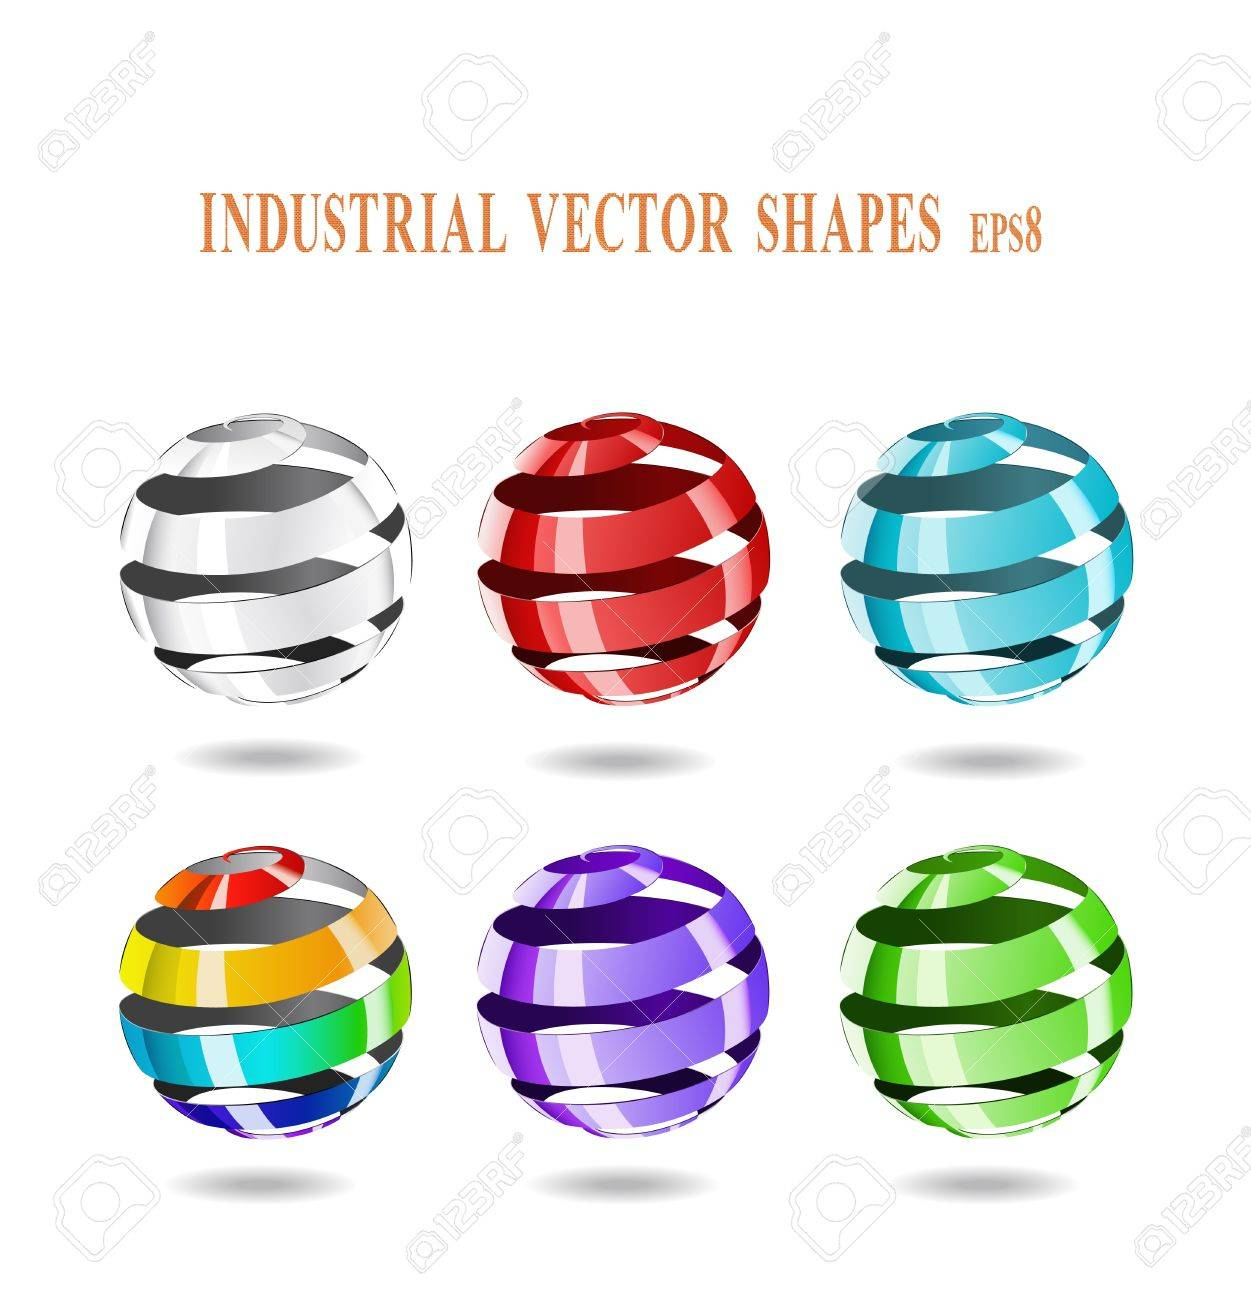 Multi-colored balls of steel strip are shown in the image. - 11451149